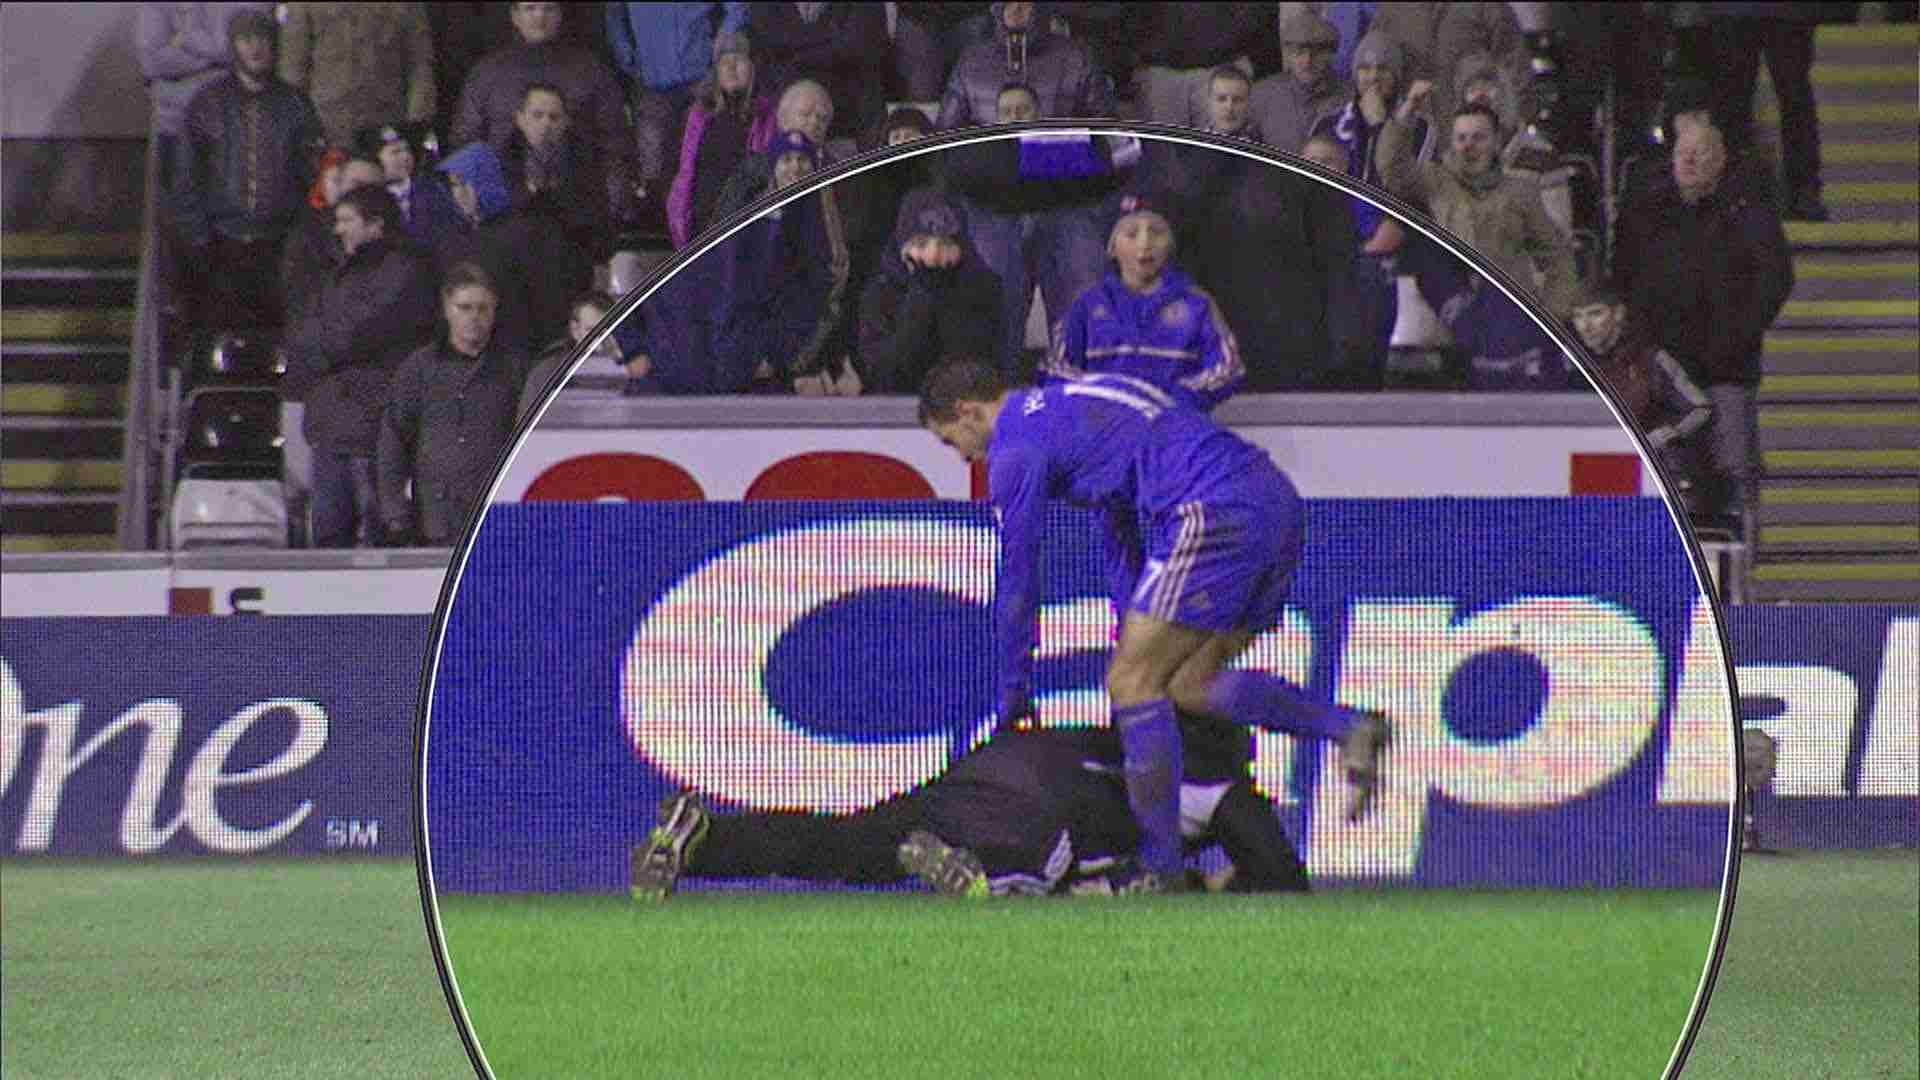 Eden Hazard Kicks Ballboy At Swansea V Chelsea Match - YouTube